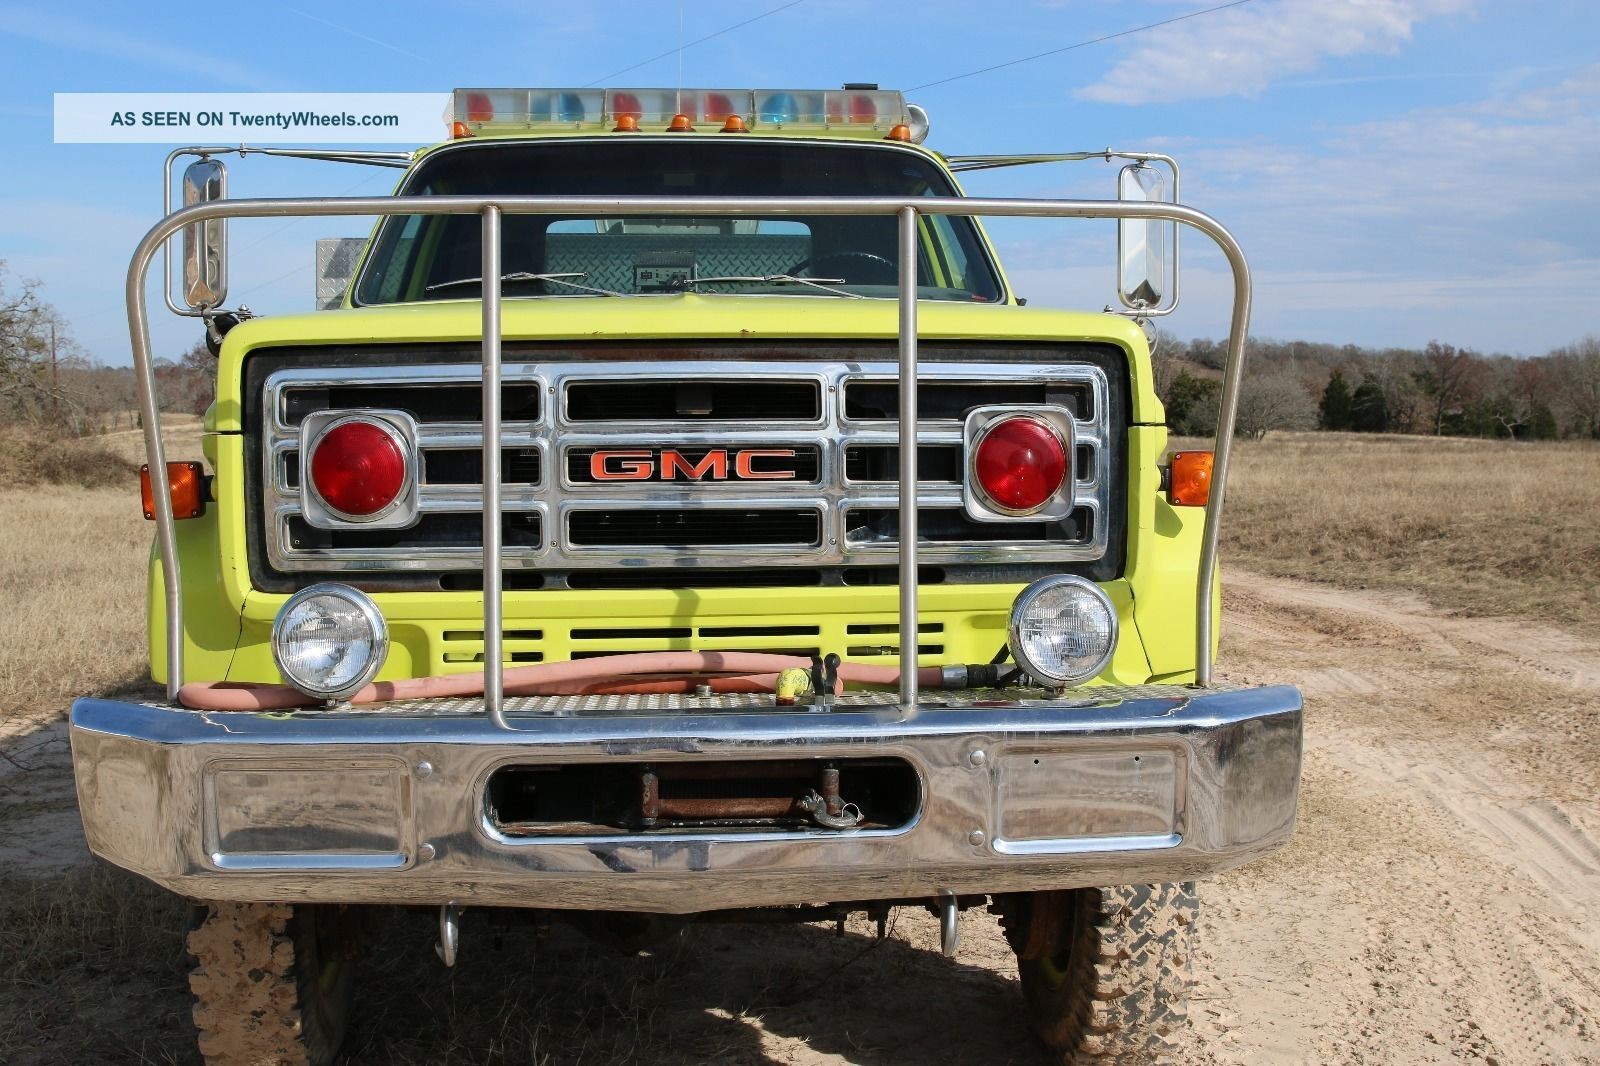 1981 Gmc 7000 Emergency & Fire Trucks photo